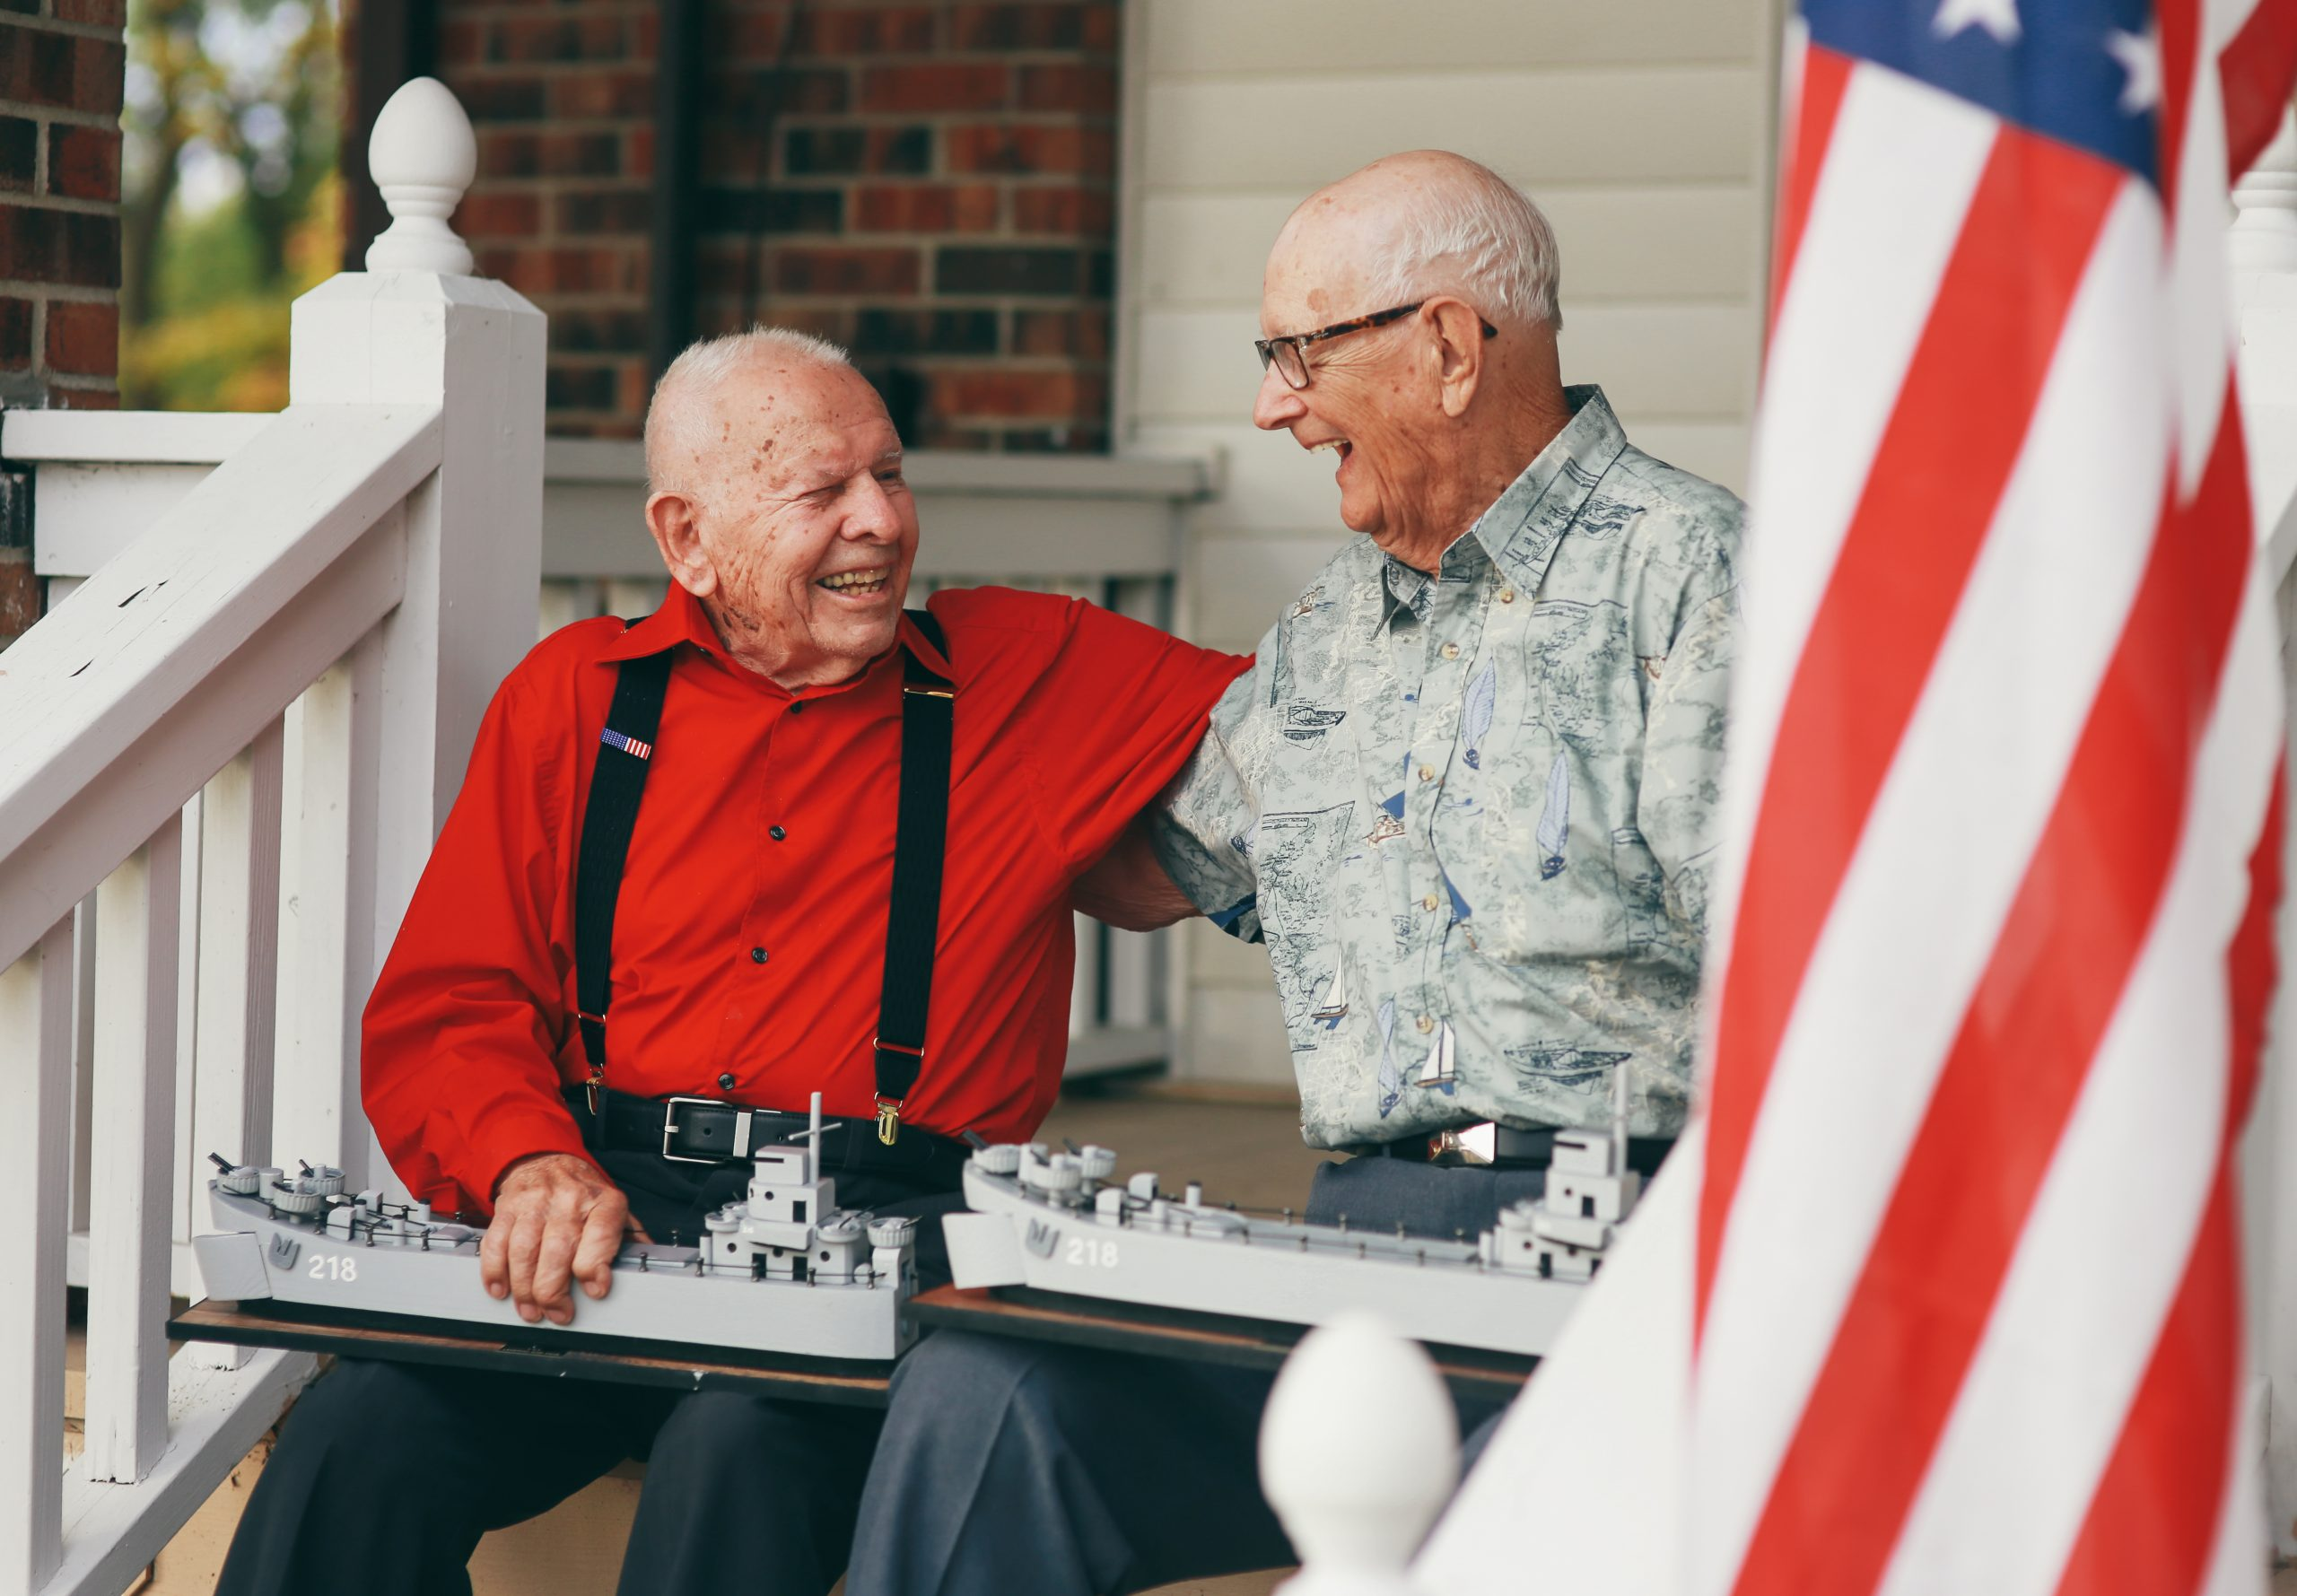 John and DeVere from the movie, The Last Signal, are sitting together embracing on the front porch, holding scaled models of the Navy ship they were on together.